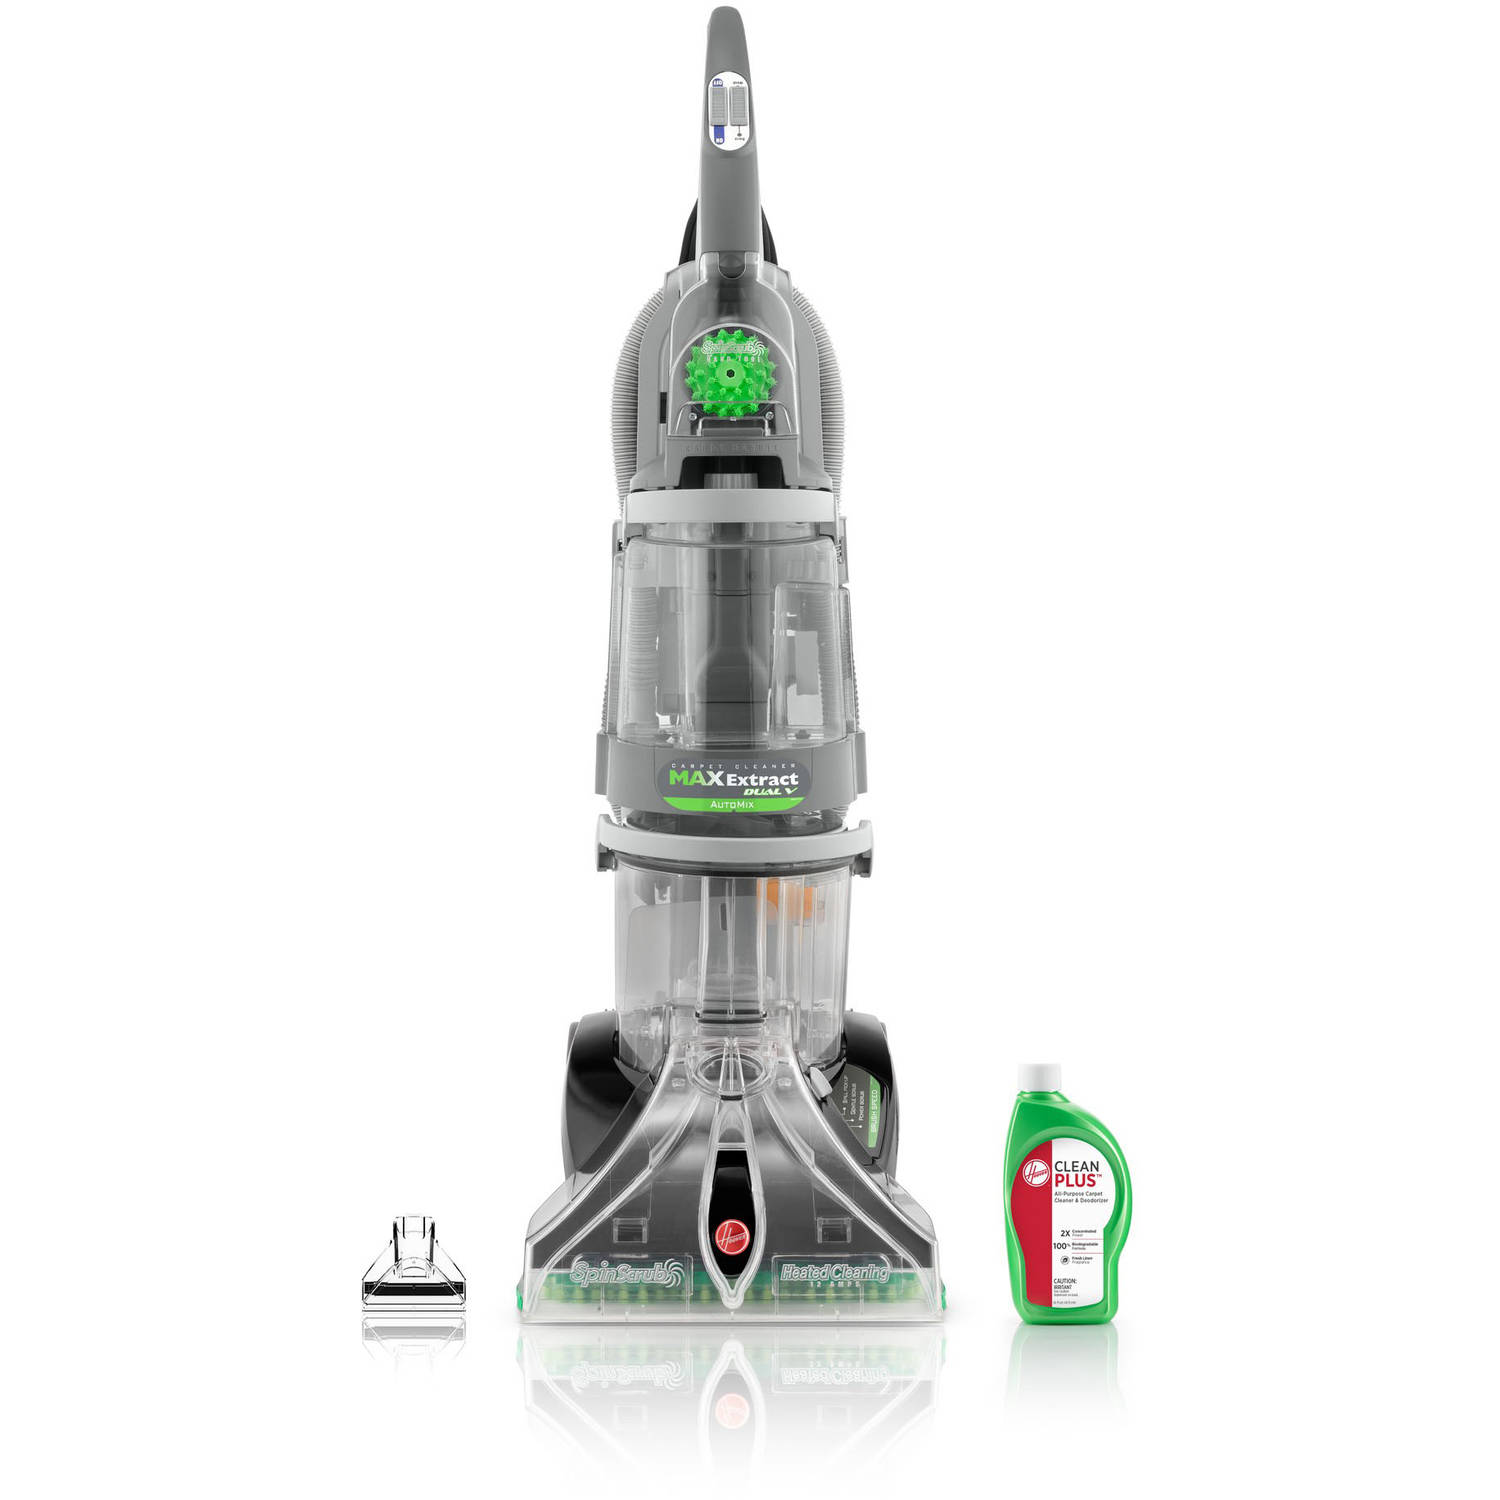 Superb Hoover Max Extract Dual V WidePath Carpet Cleaner, F7412900